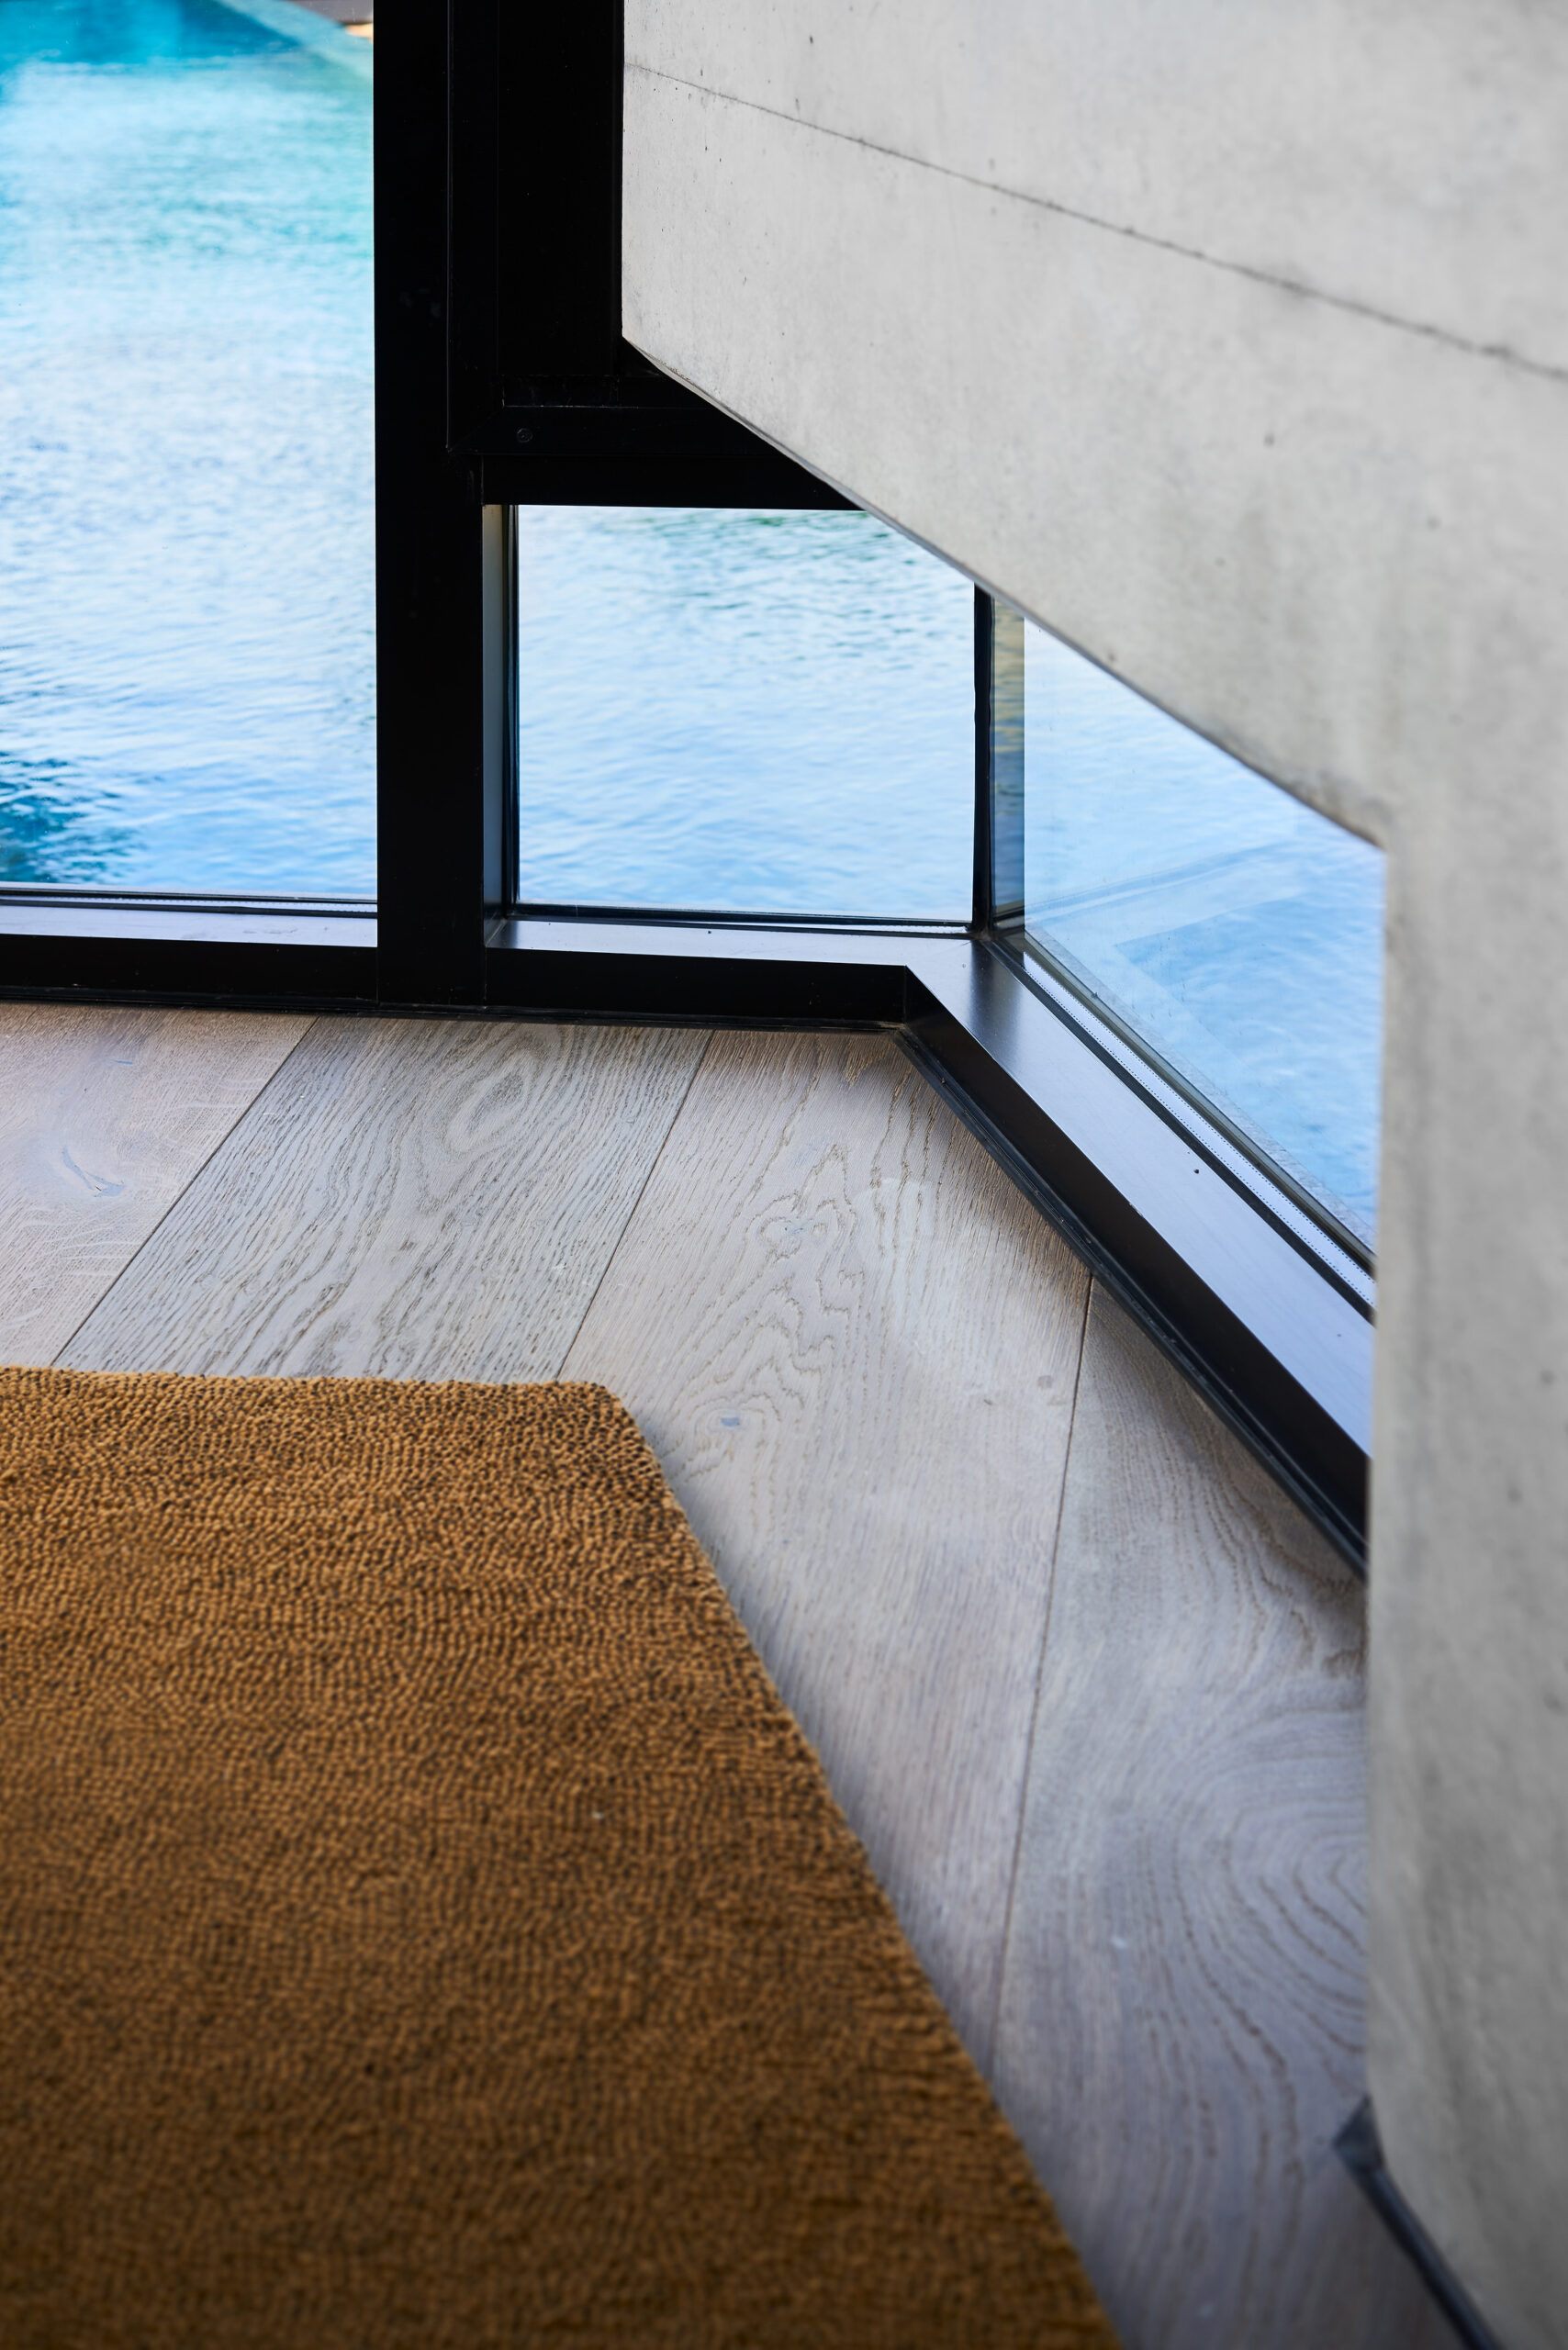 timber floor leading to a black aluminium window frame at floor level that reveals the pool below